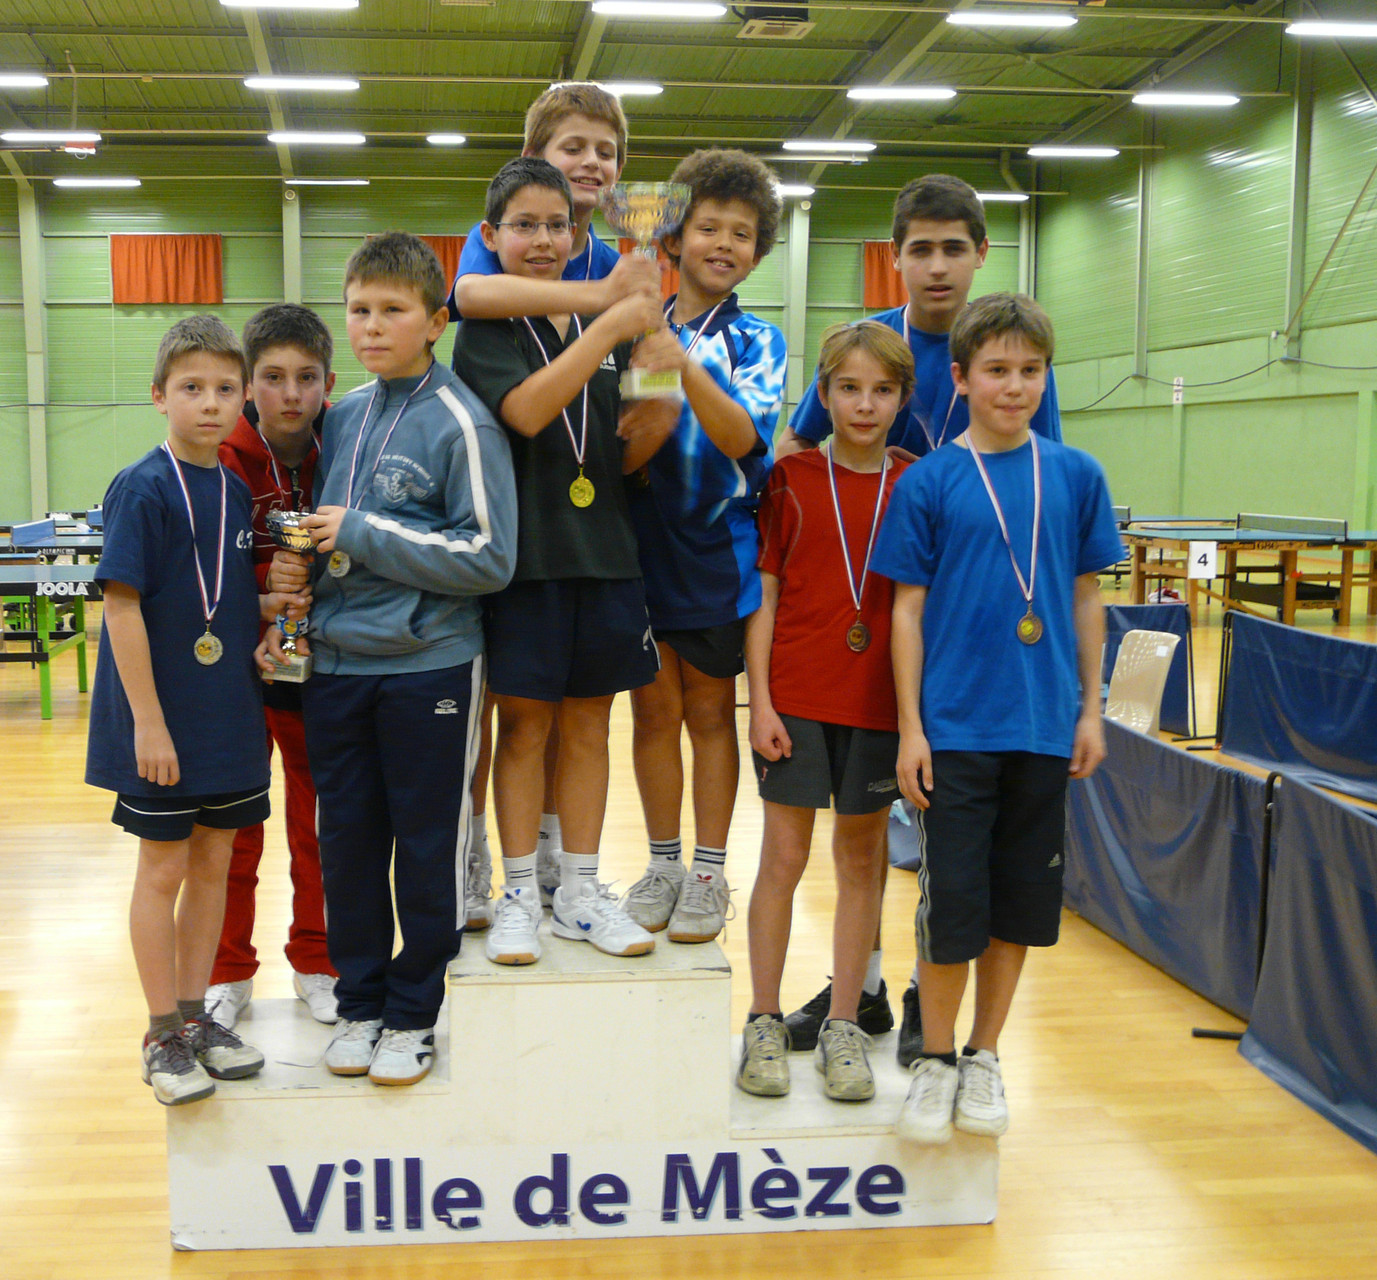 Interclubs 2010 à Mèze